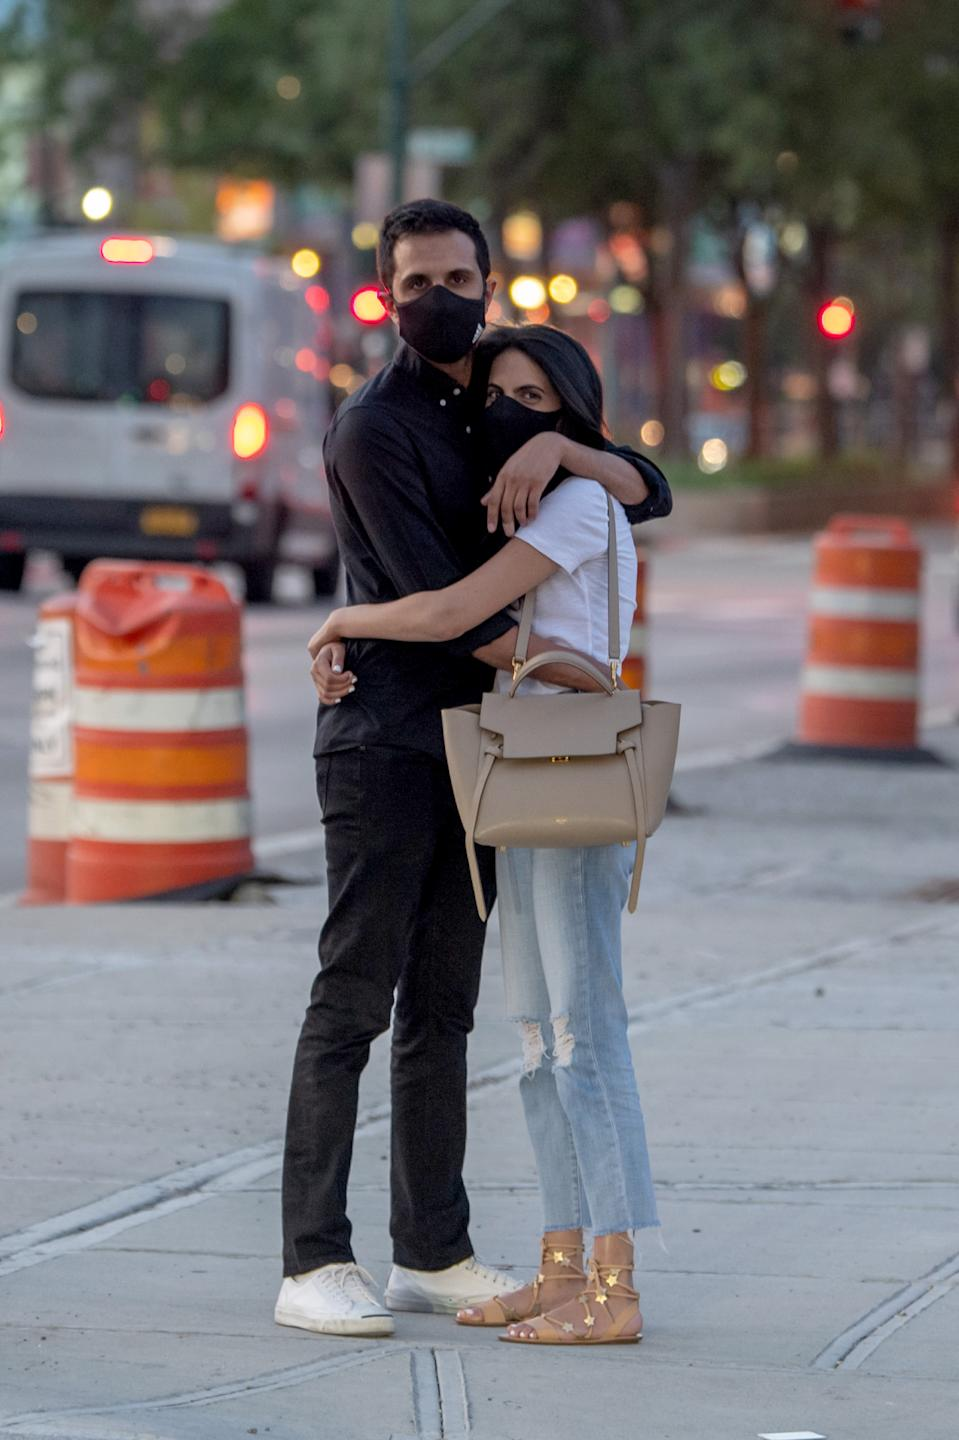 A couple wearing masks are seen hugging on the sidewalk as the city enters Phase 4 of re-opening following restrictions imposed to slow the spread of coronavirus on July 21, 2020 in New York City. (Photo by Alexi Rosenfeld/Getty Images)